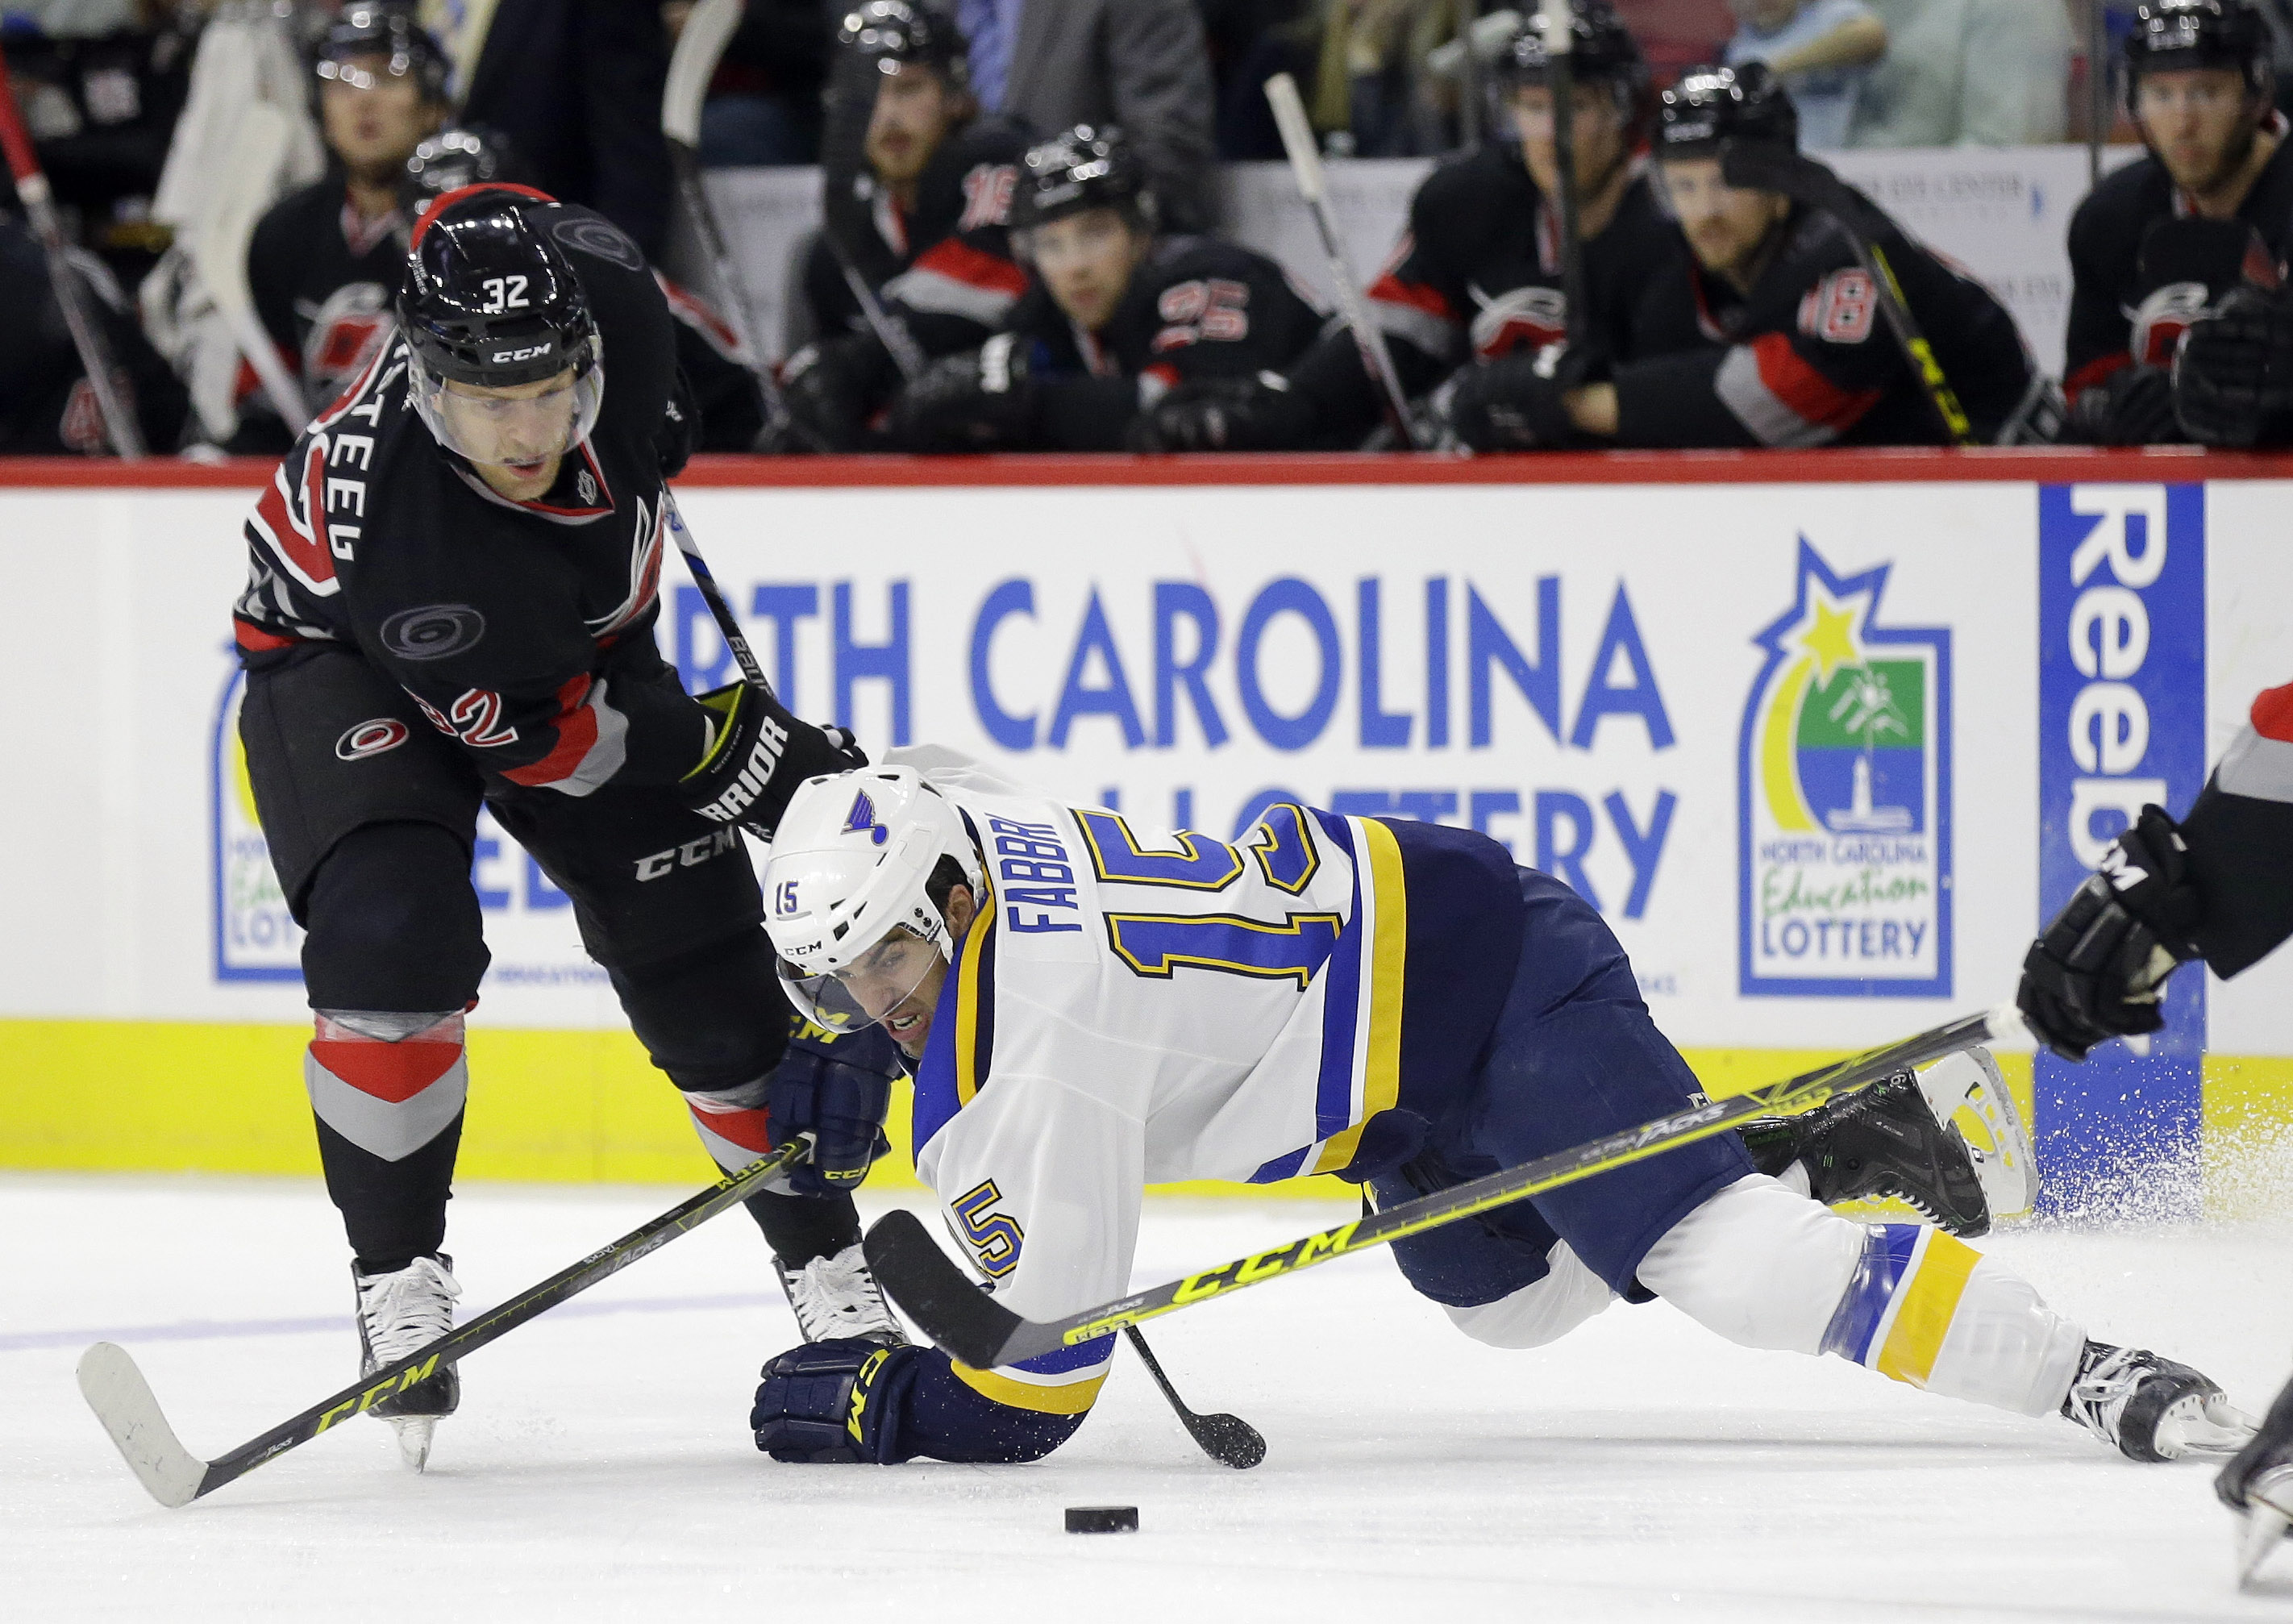 St. Louis Blues' Robby Fabbri (15) falls while chasing the puck with Carolina Hurricanes' Kris Versteeg (32) during the first period of an NHL hockey game in Raleigh, N.C., Sunday, Feb. 28, 2016. (AP Photo/Gerry Broome)